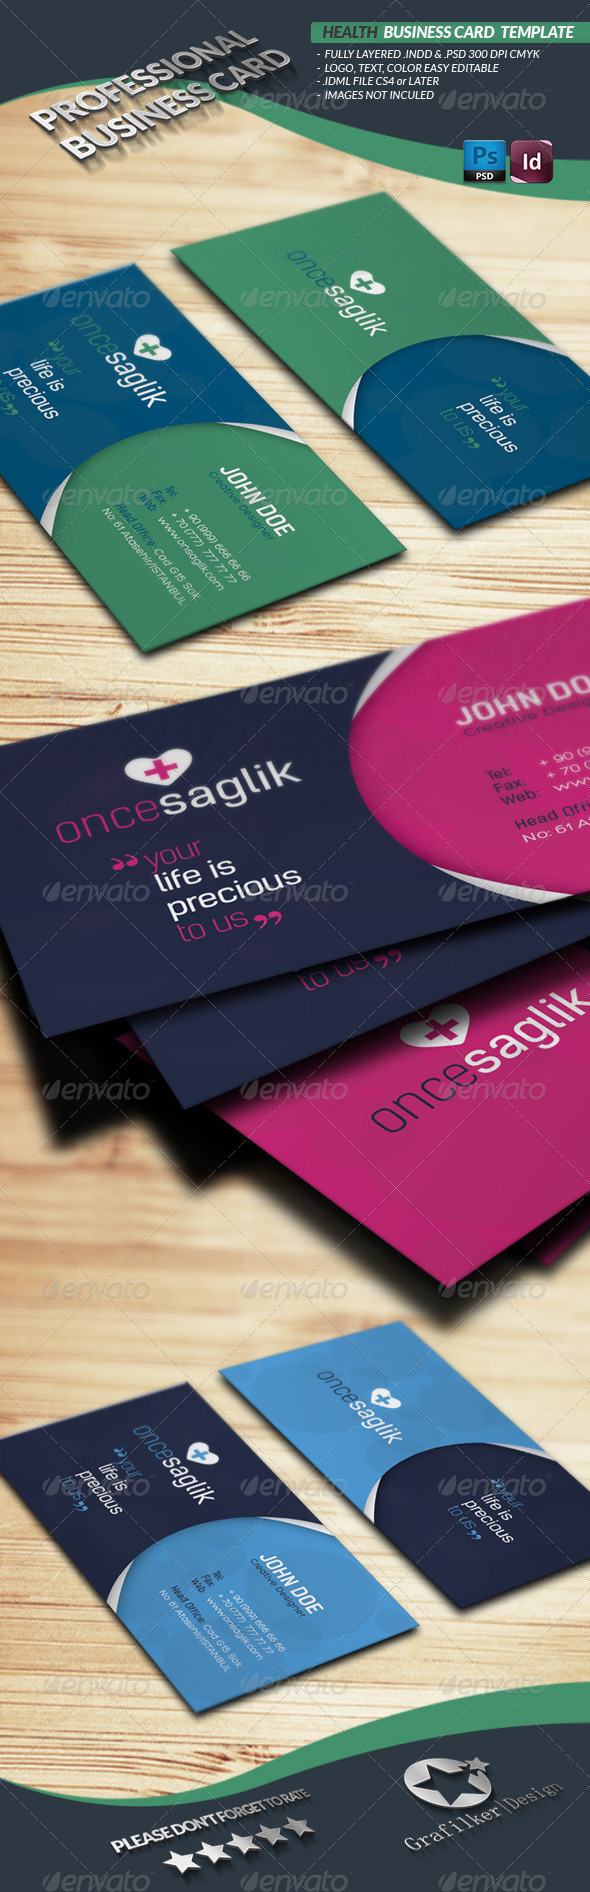 Health Business Card Template - Business Cards Print Templates